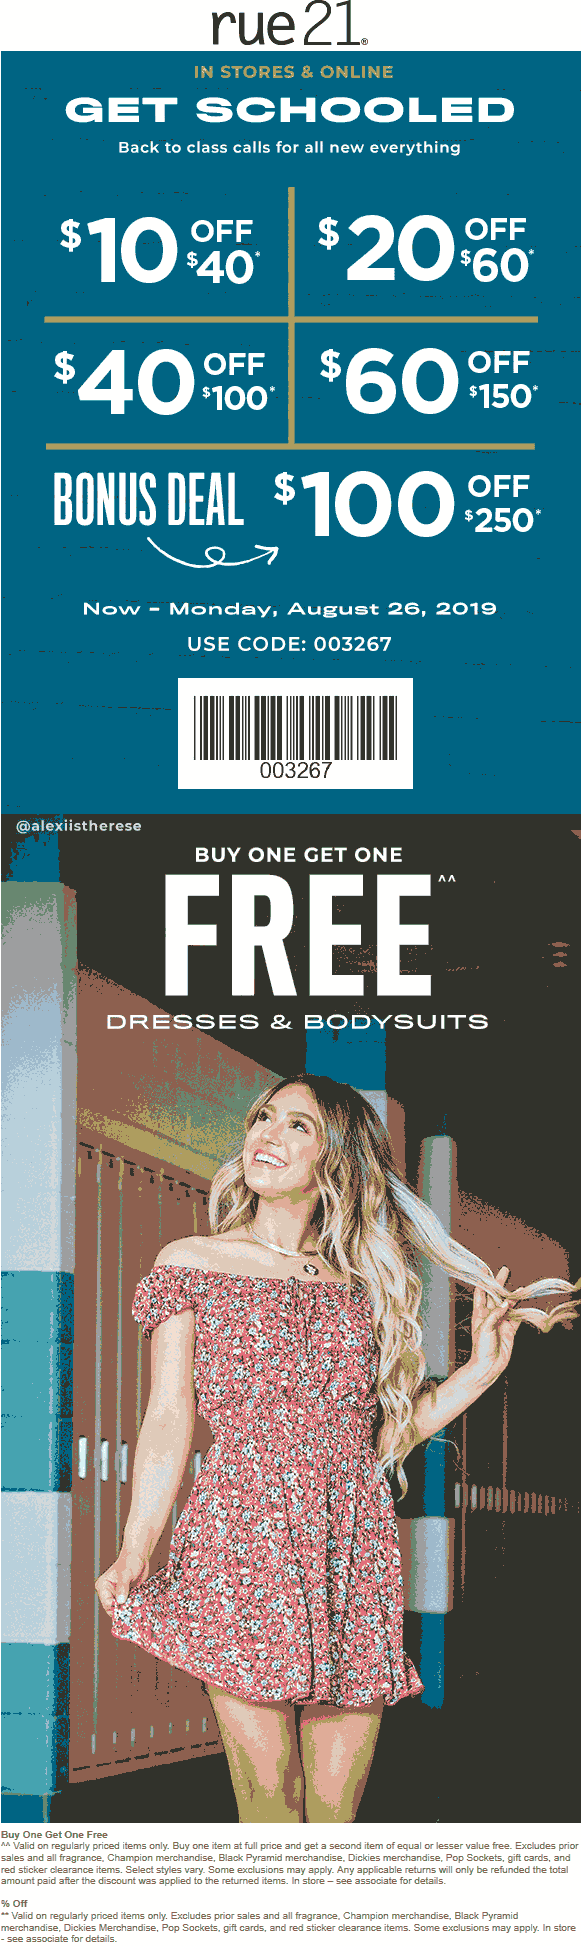 Rue21 Coupon September 2019 $10 off $40 & more at rue21, or online via promo code 003267